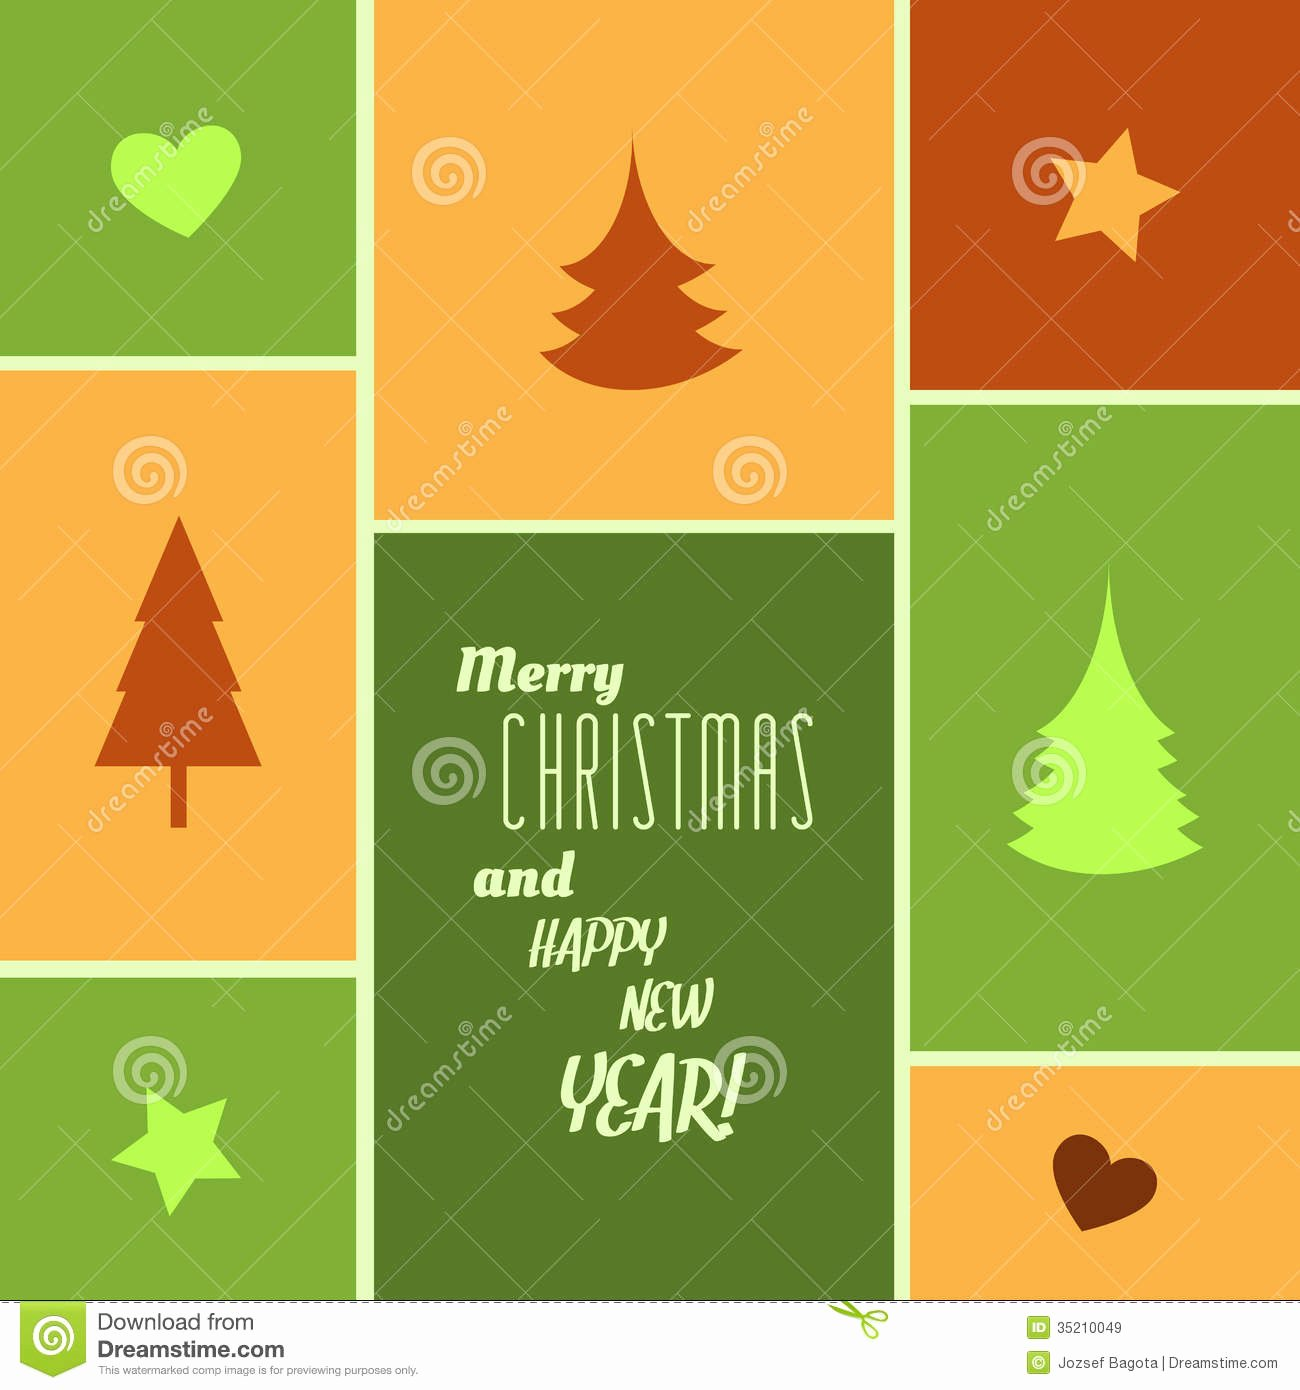 New Year Card Template Unique Christmas Card Stock Vector Image Of Line Corporate